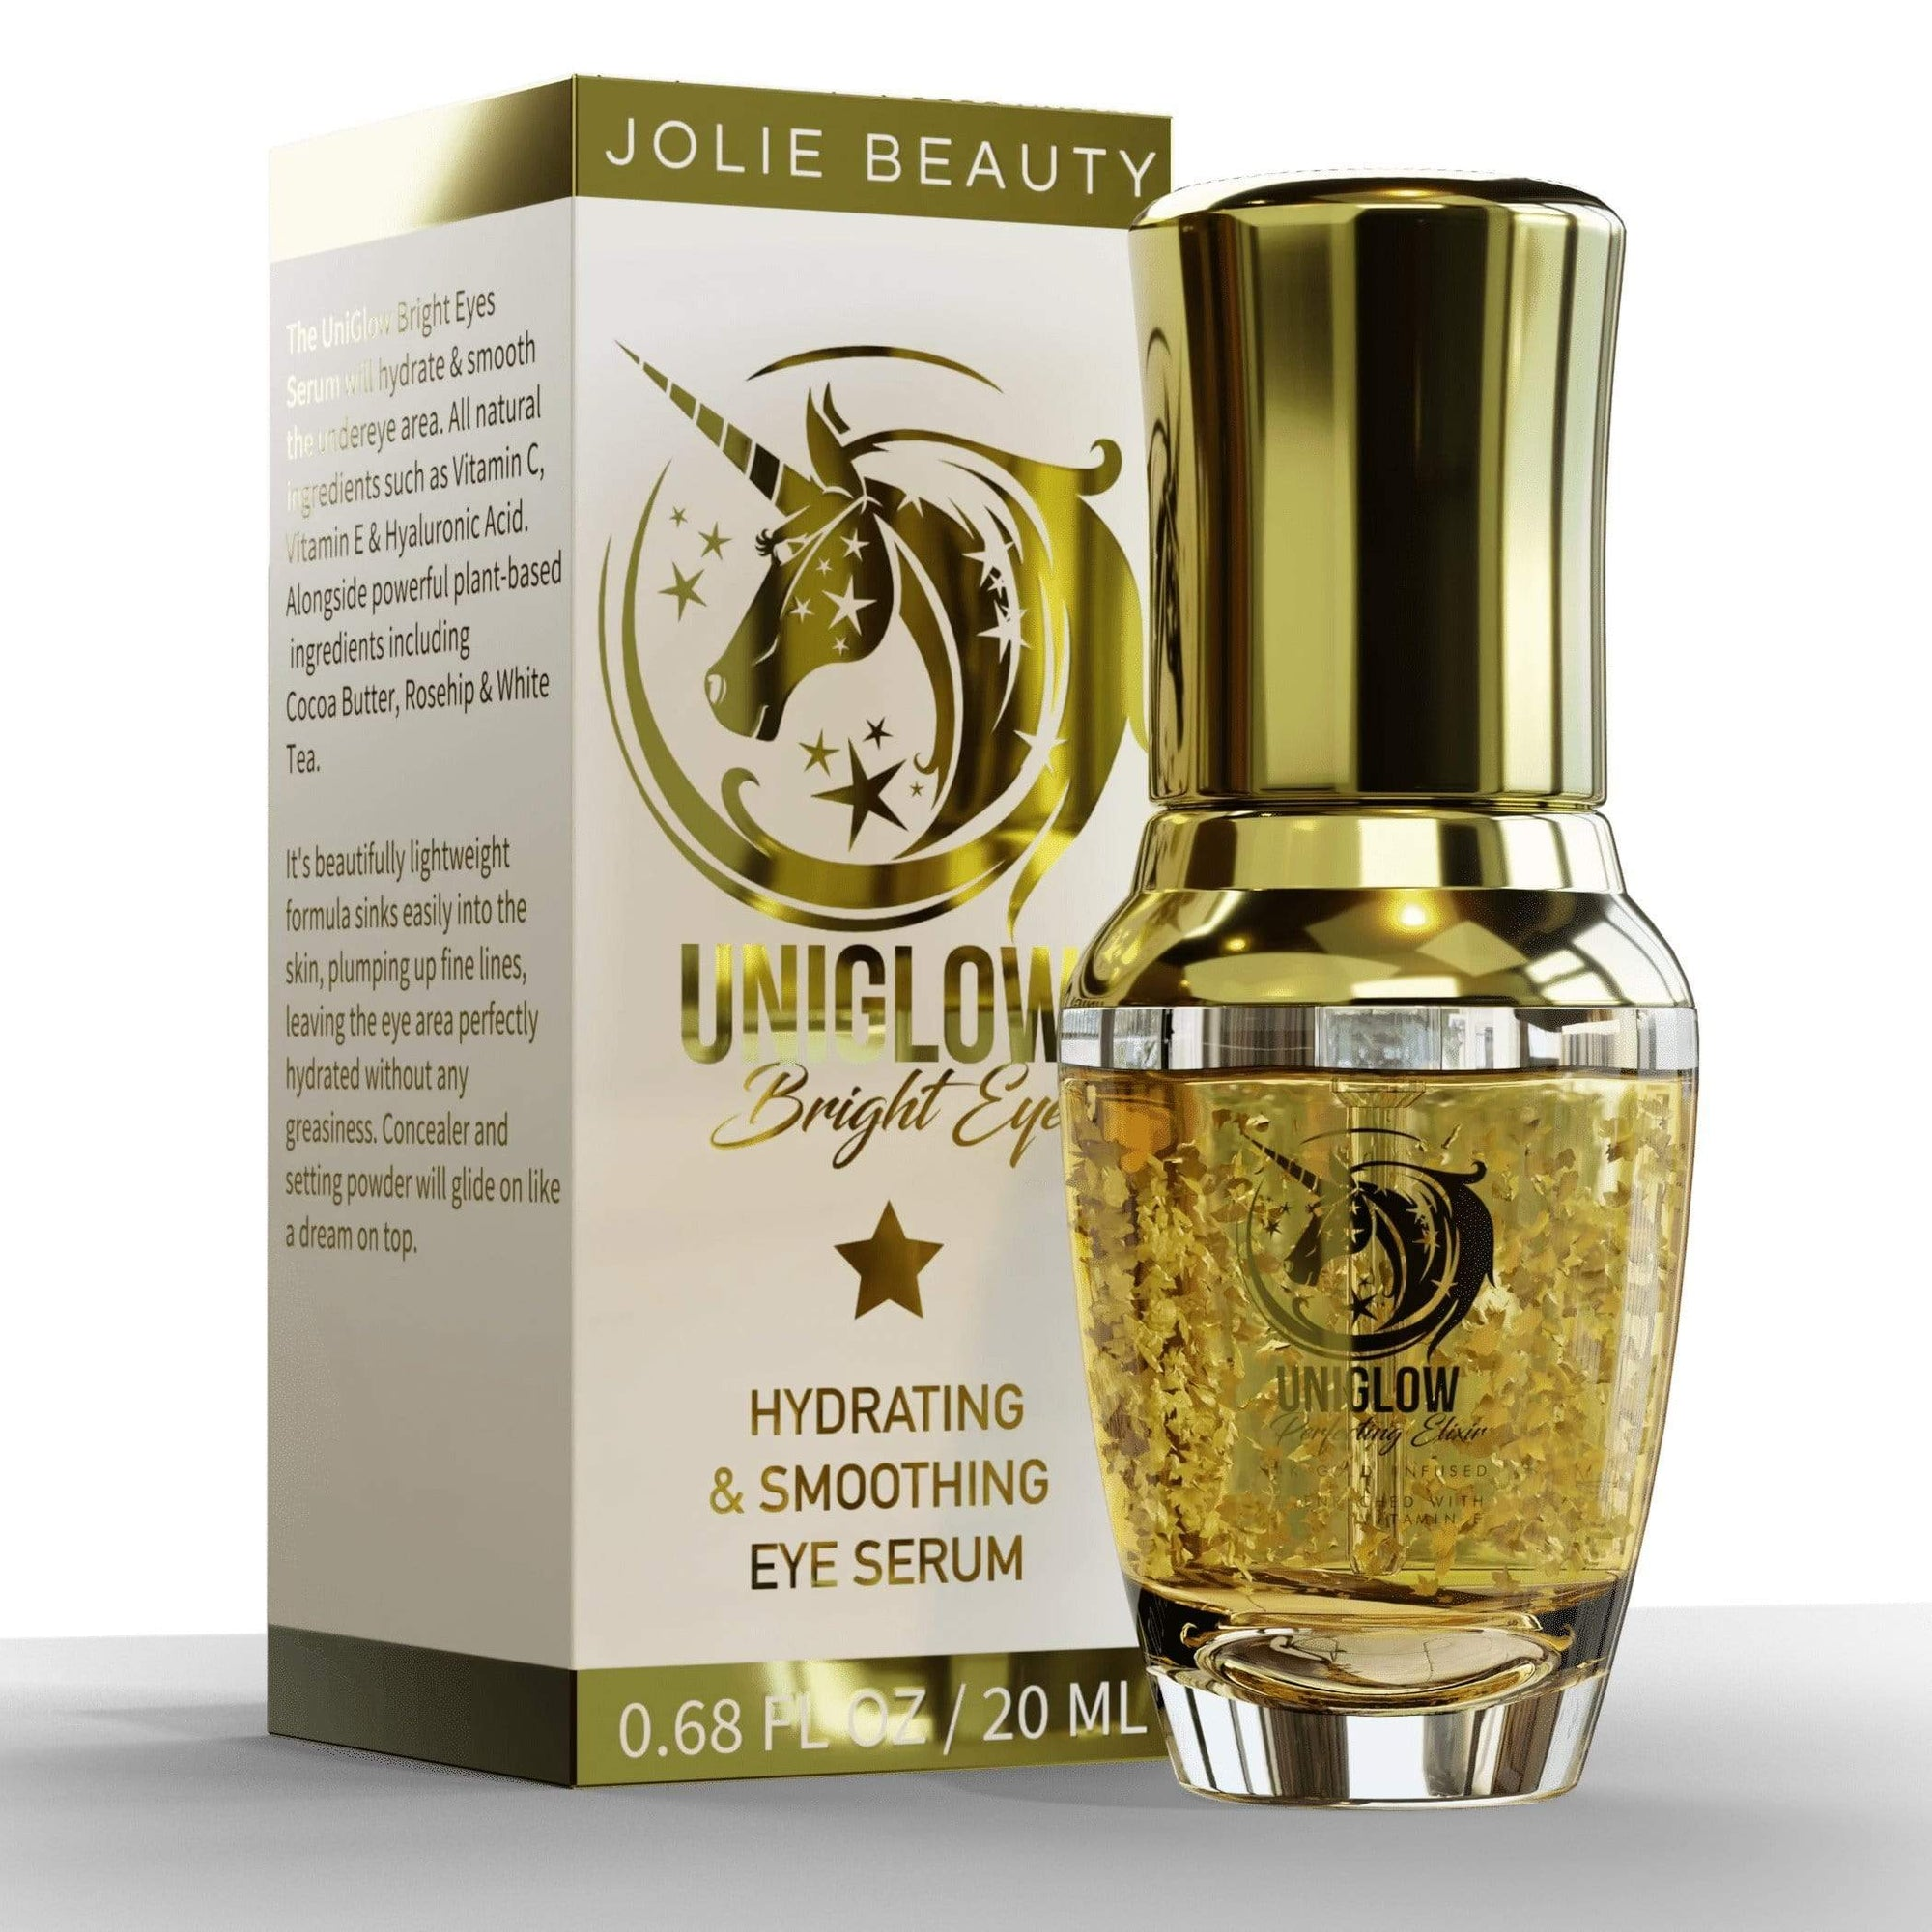 UniGlow | Best Facial Oil - Jolie Beauty